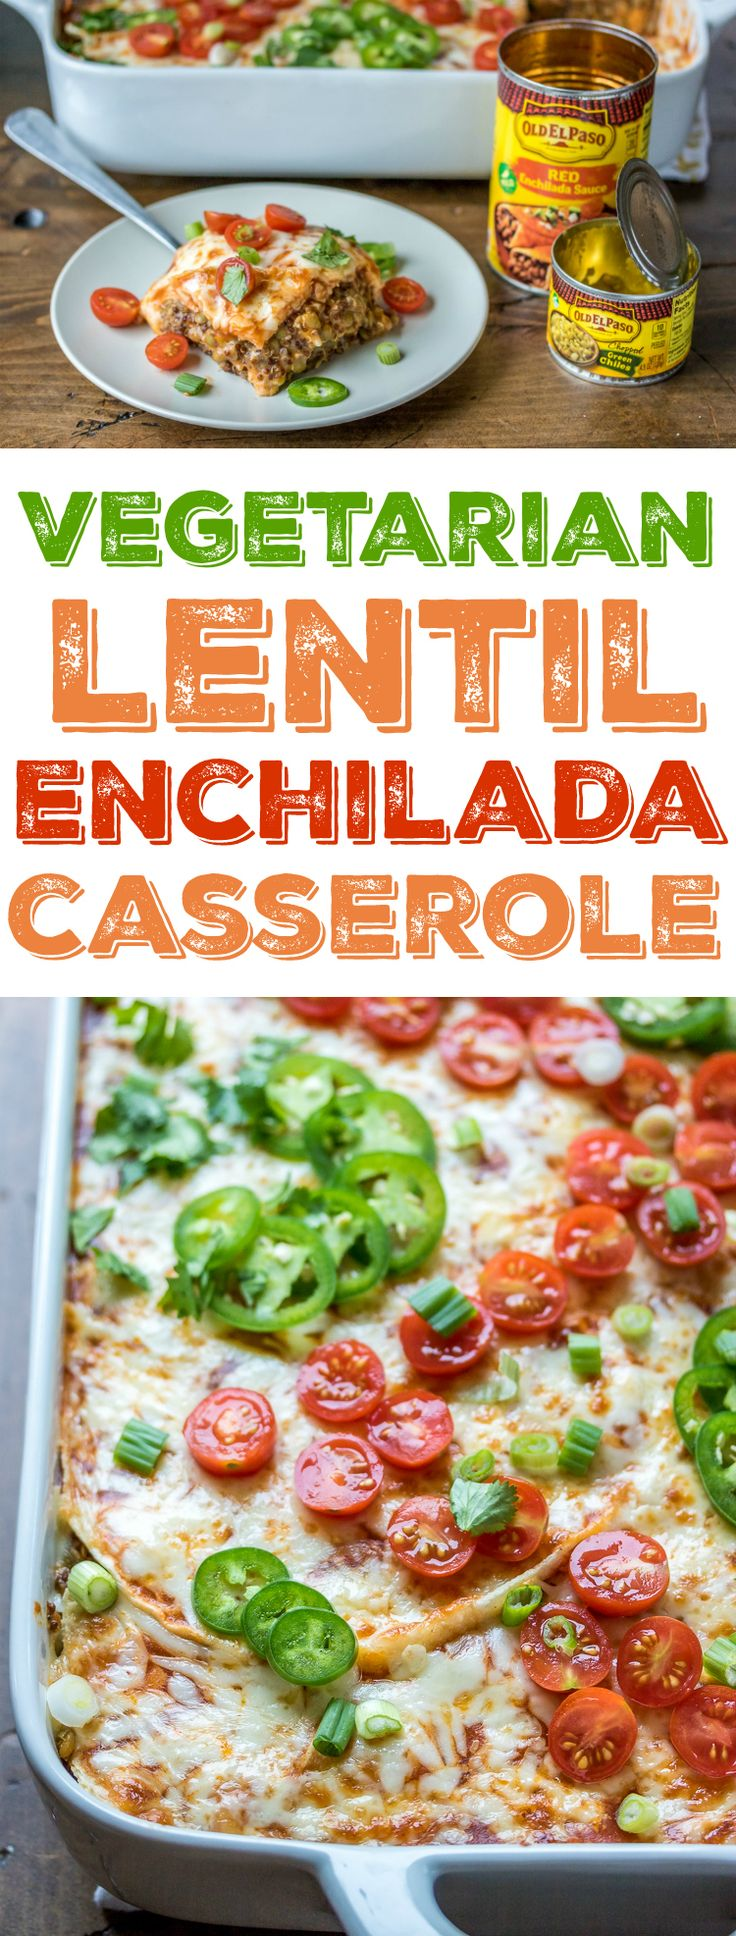 I'm usually too lazy to make *actual* enchiladas, which is why I love a good enchilada casserole. This version is made with lentils, quinoa, and mushrooms and topped with chilies, cheese, and enchilada sauce.